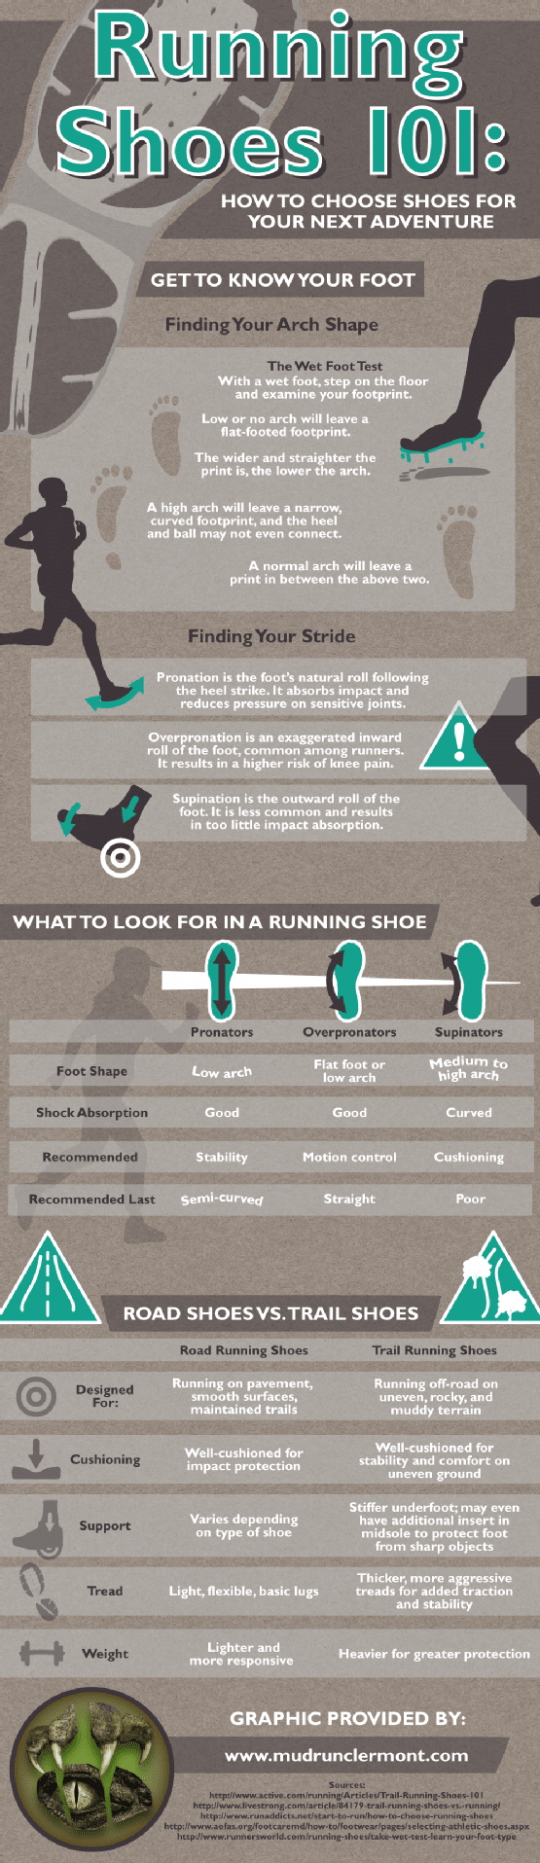 Running Shoes 101: How to Choose Shoes for Your Next Adventure